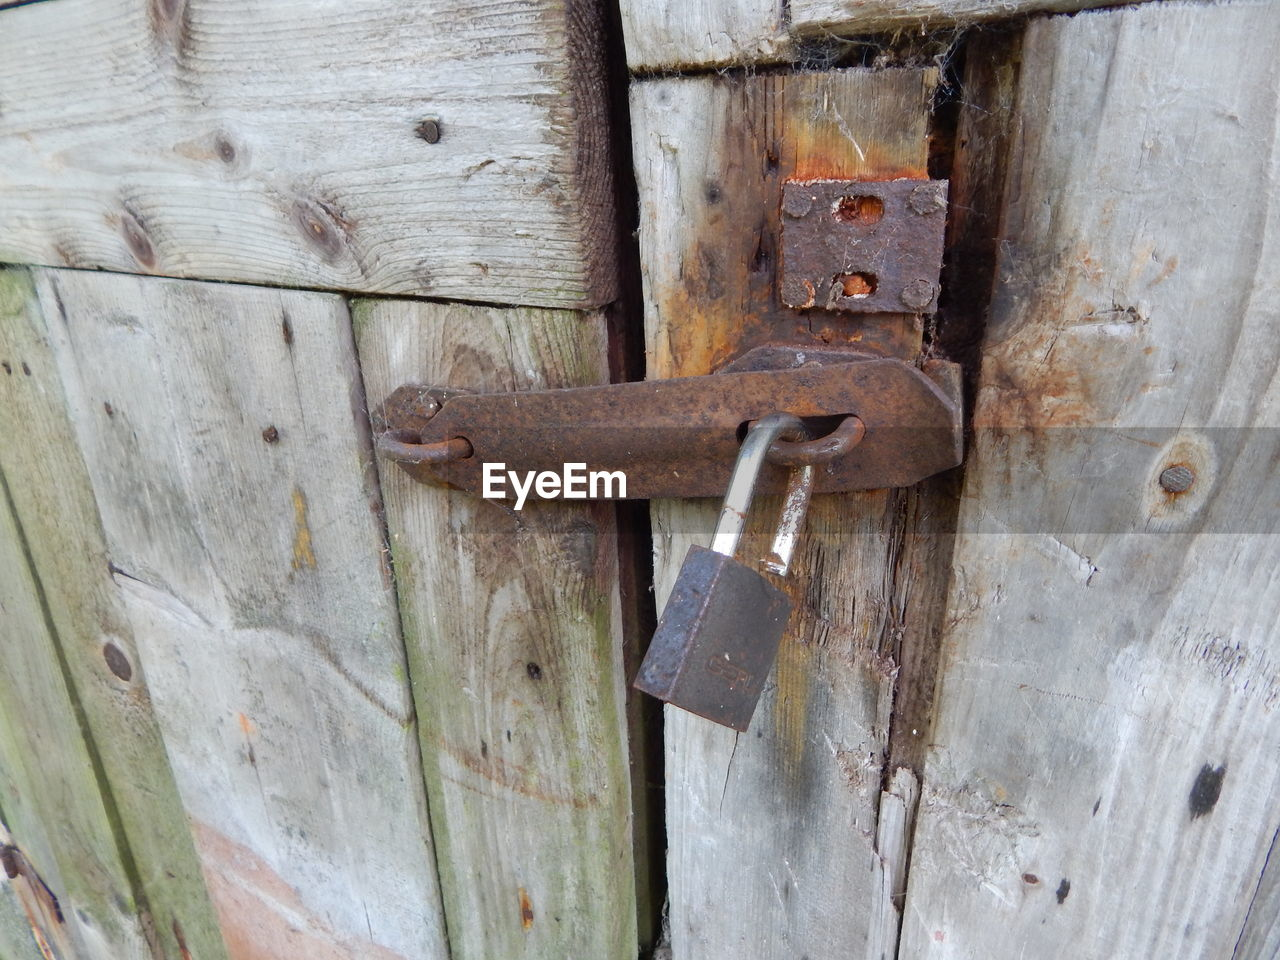 lock, wood - material, door, entrance, metal, padlock, safety, close-up, protection, security, no people, closed, latch, backgrounds, day, old, outdoors, full frame, rusty, detail